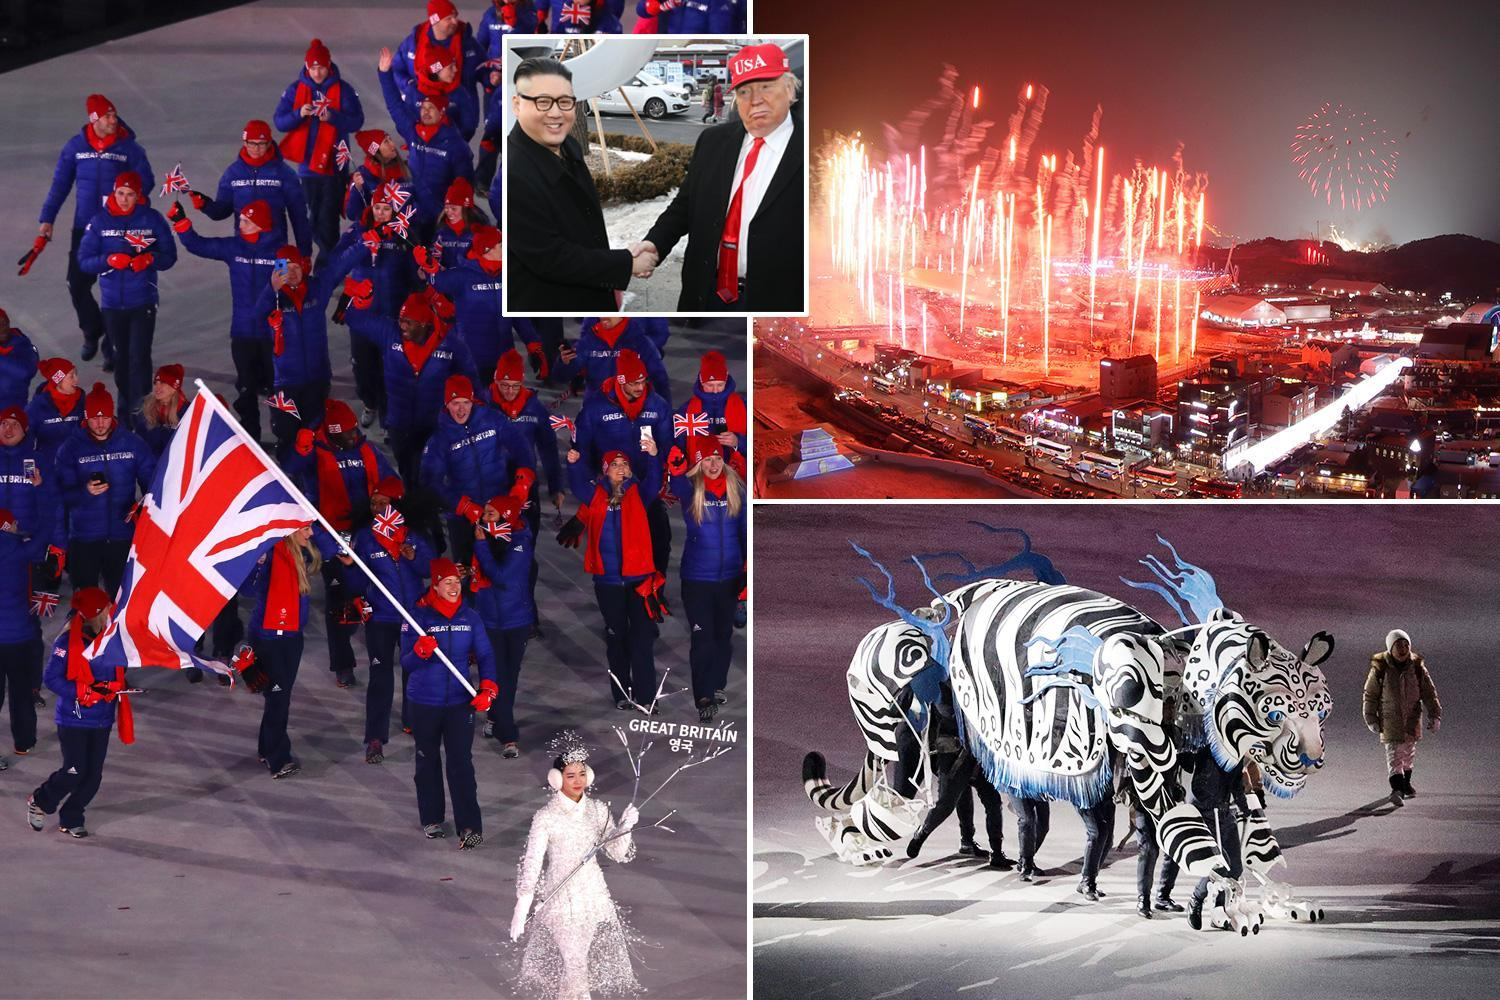 Winter Olympics 2018 opening ceremony gets under way with show of Korean unity in Pyeongchang